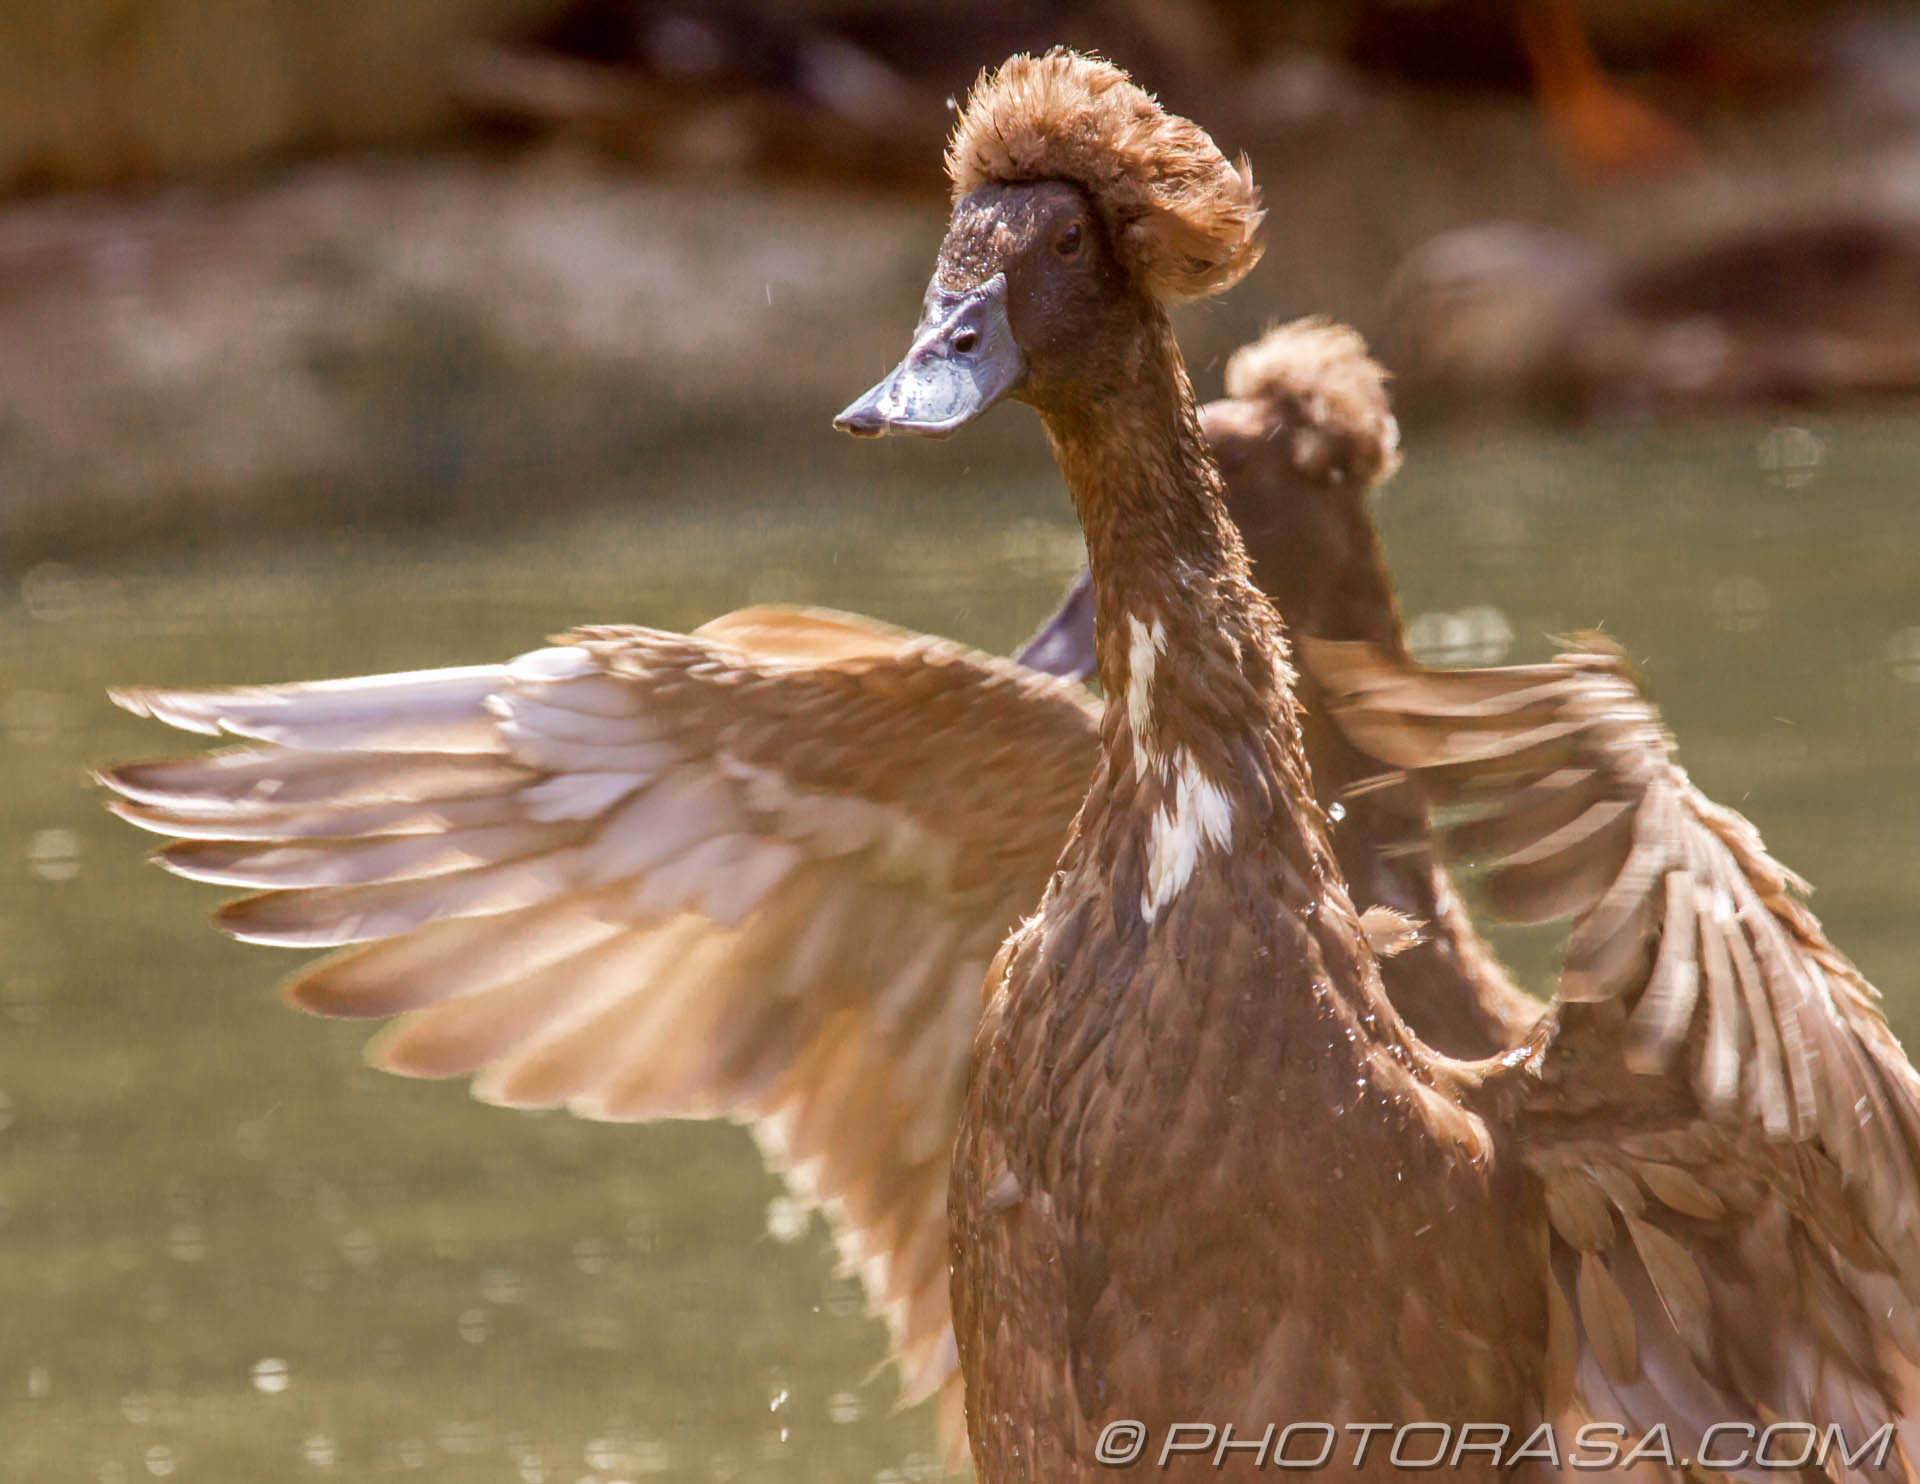 http://photorasa.com/birds-greenworld/bali-indian-runner-duck-in-a-flap/